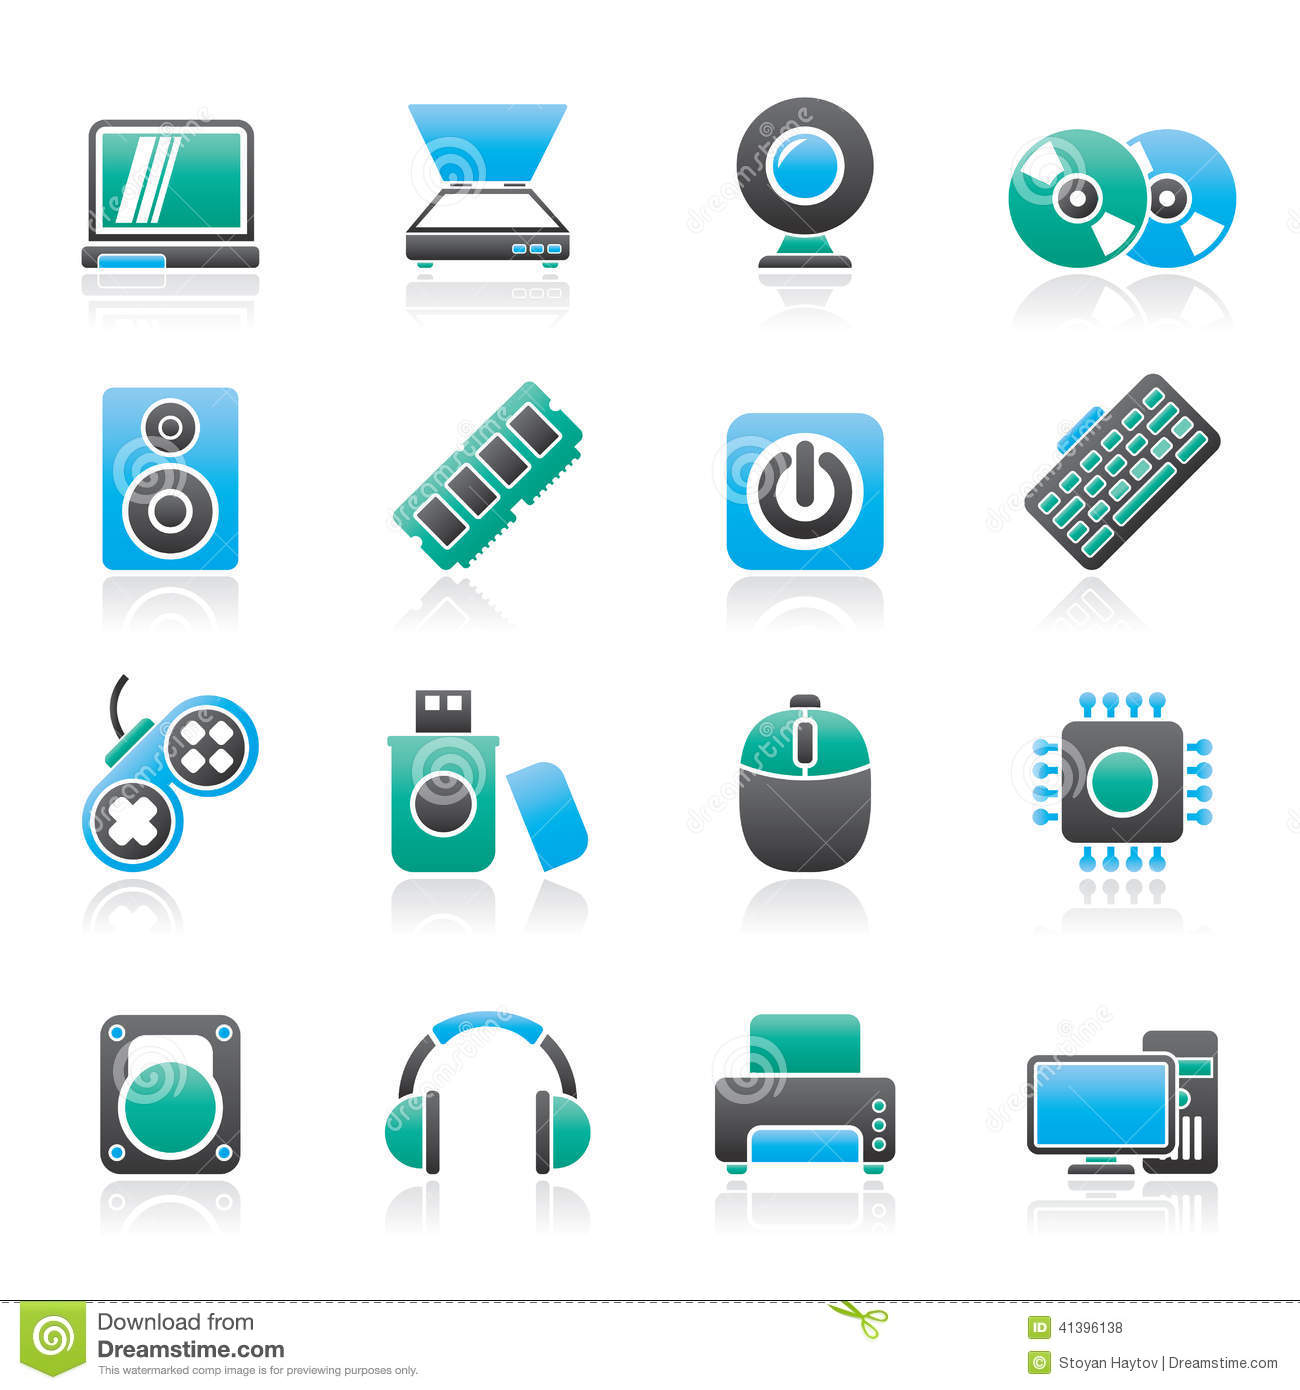 Computer Parts And Devices Icons Stock Vector - Image: 41396138